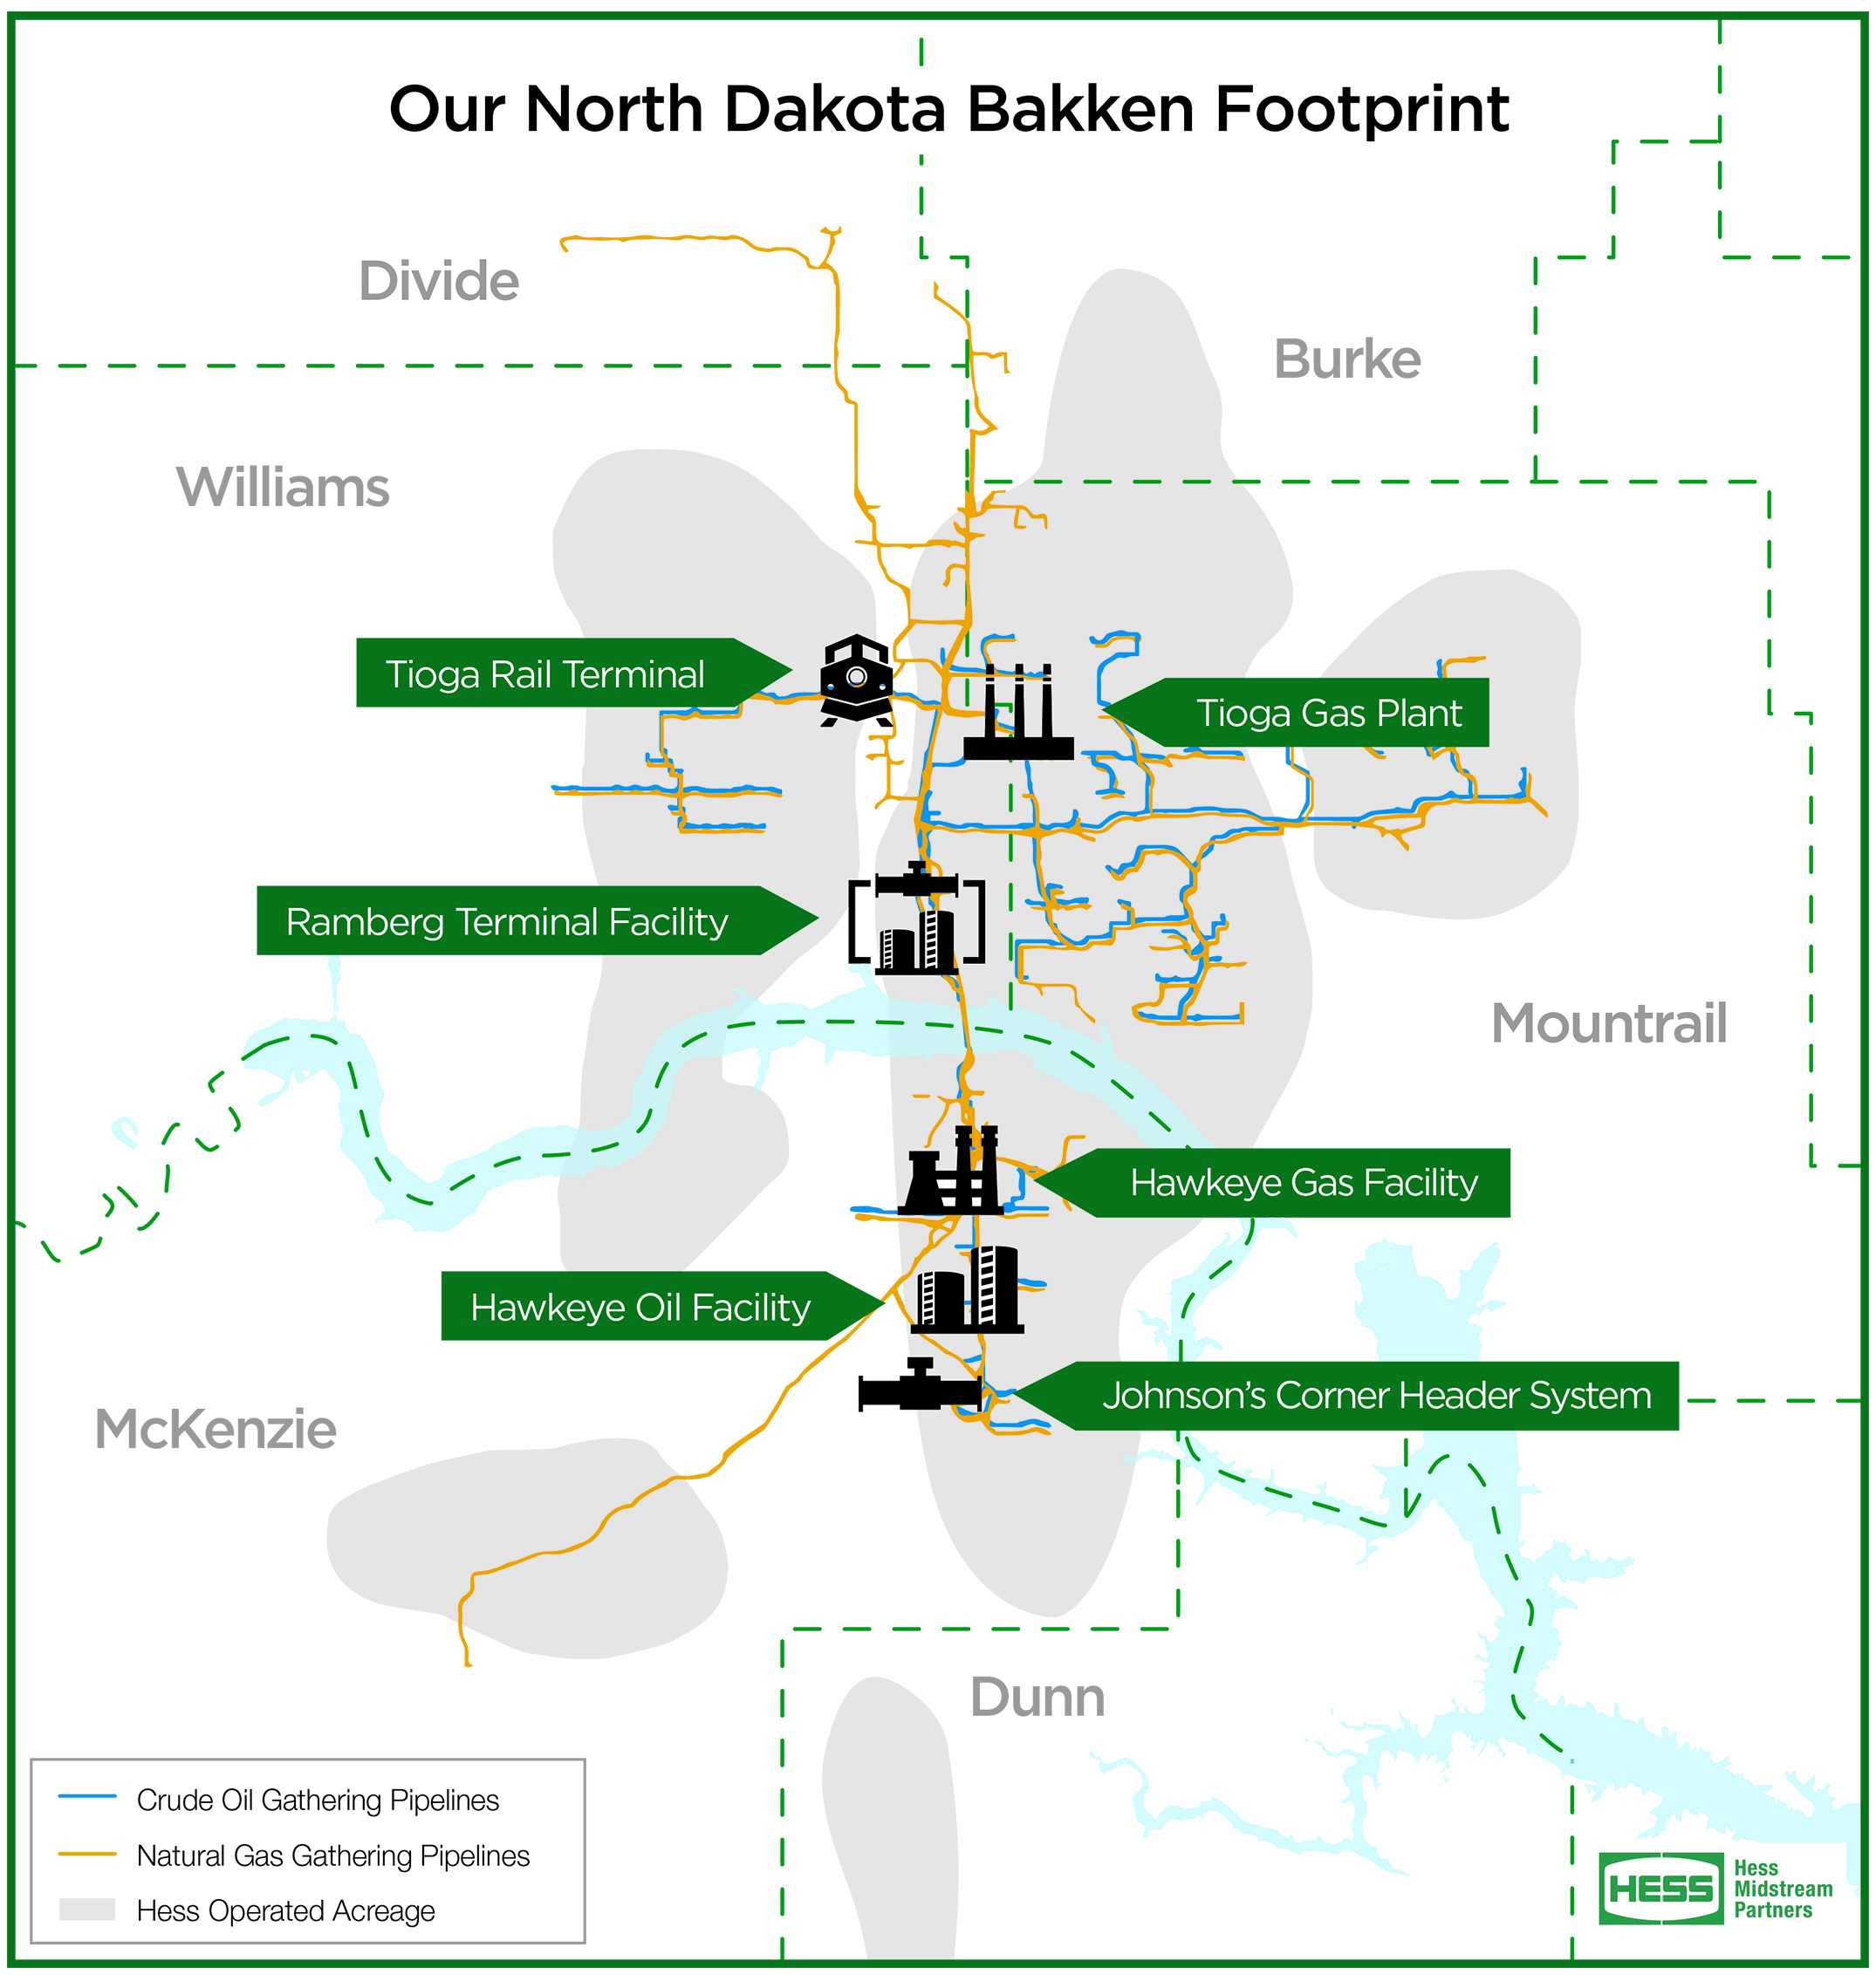 Our North Dakota Bakken Footprint